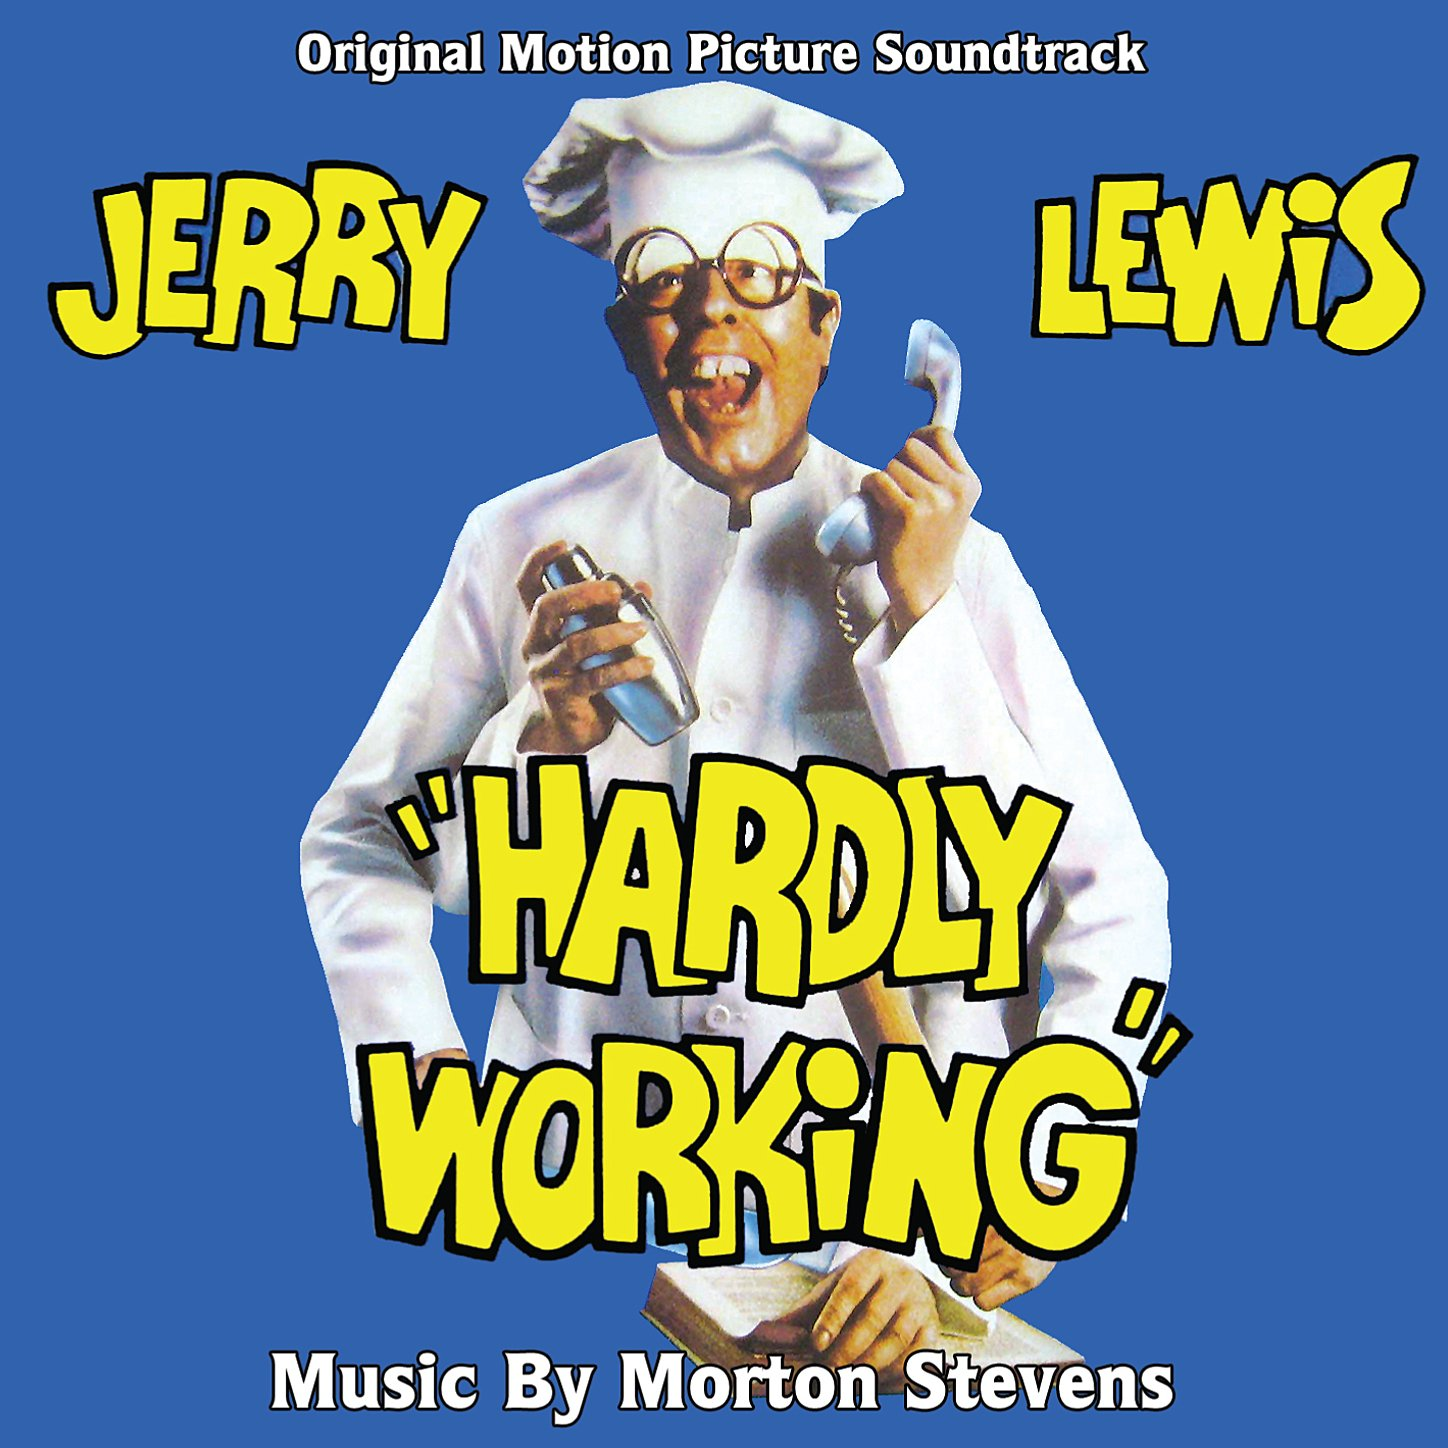 Hardly working - Bentornato Picchiatello (1980)